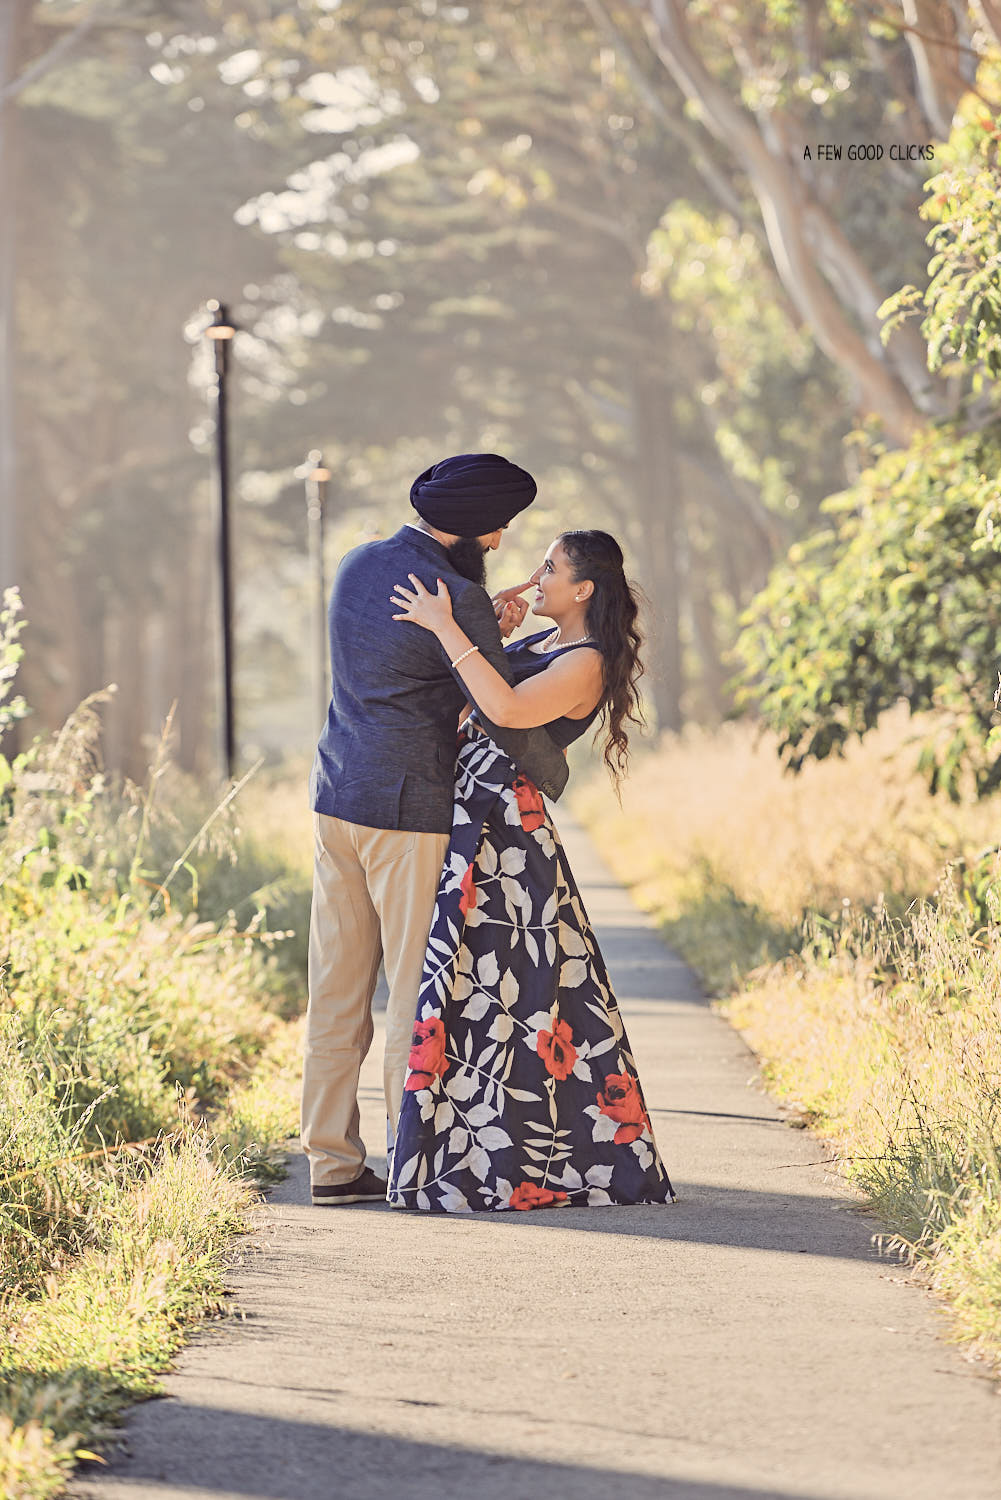 presidio-engagement-session-photography-san-francisco 147.jpg